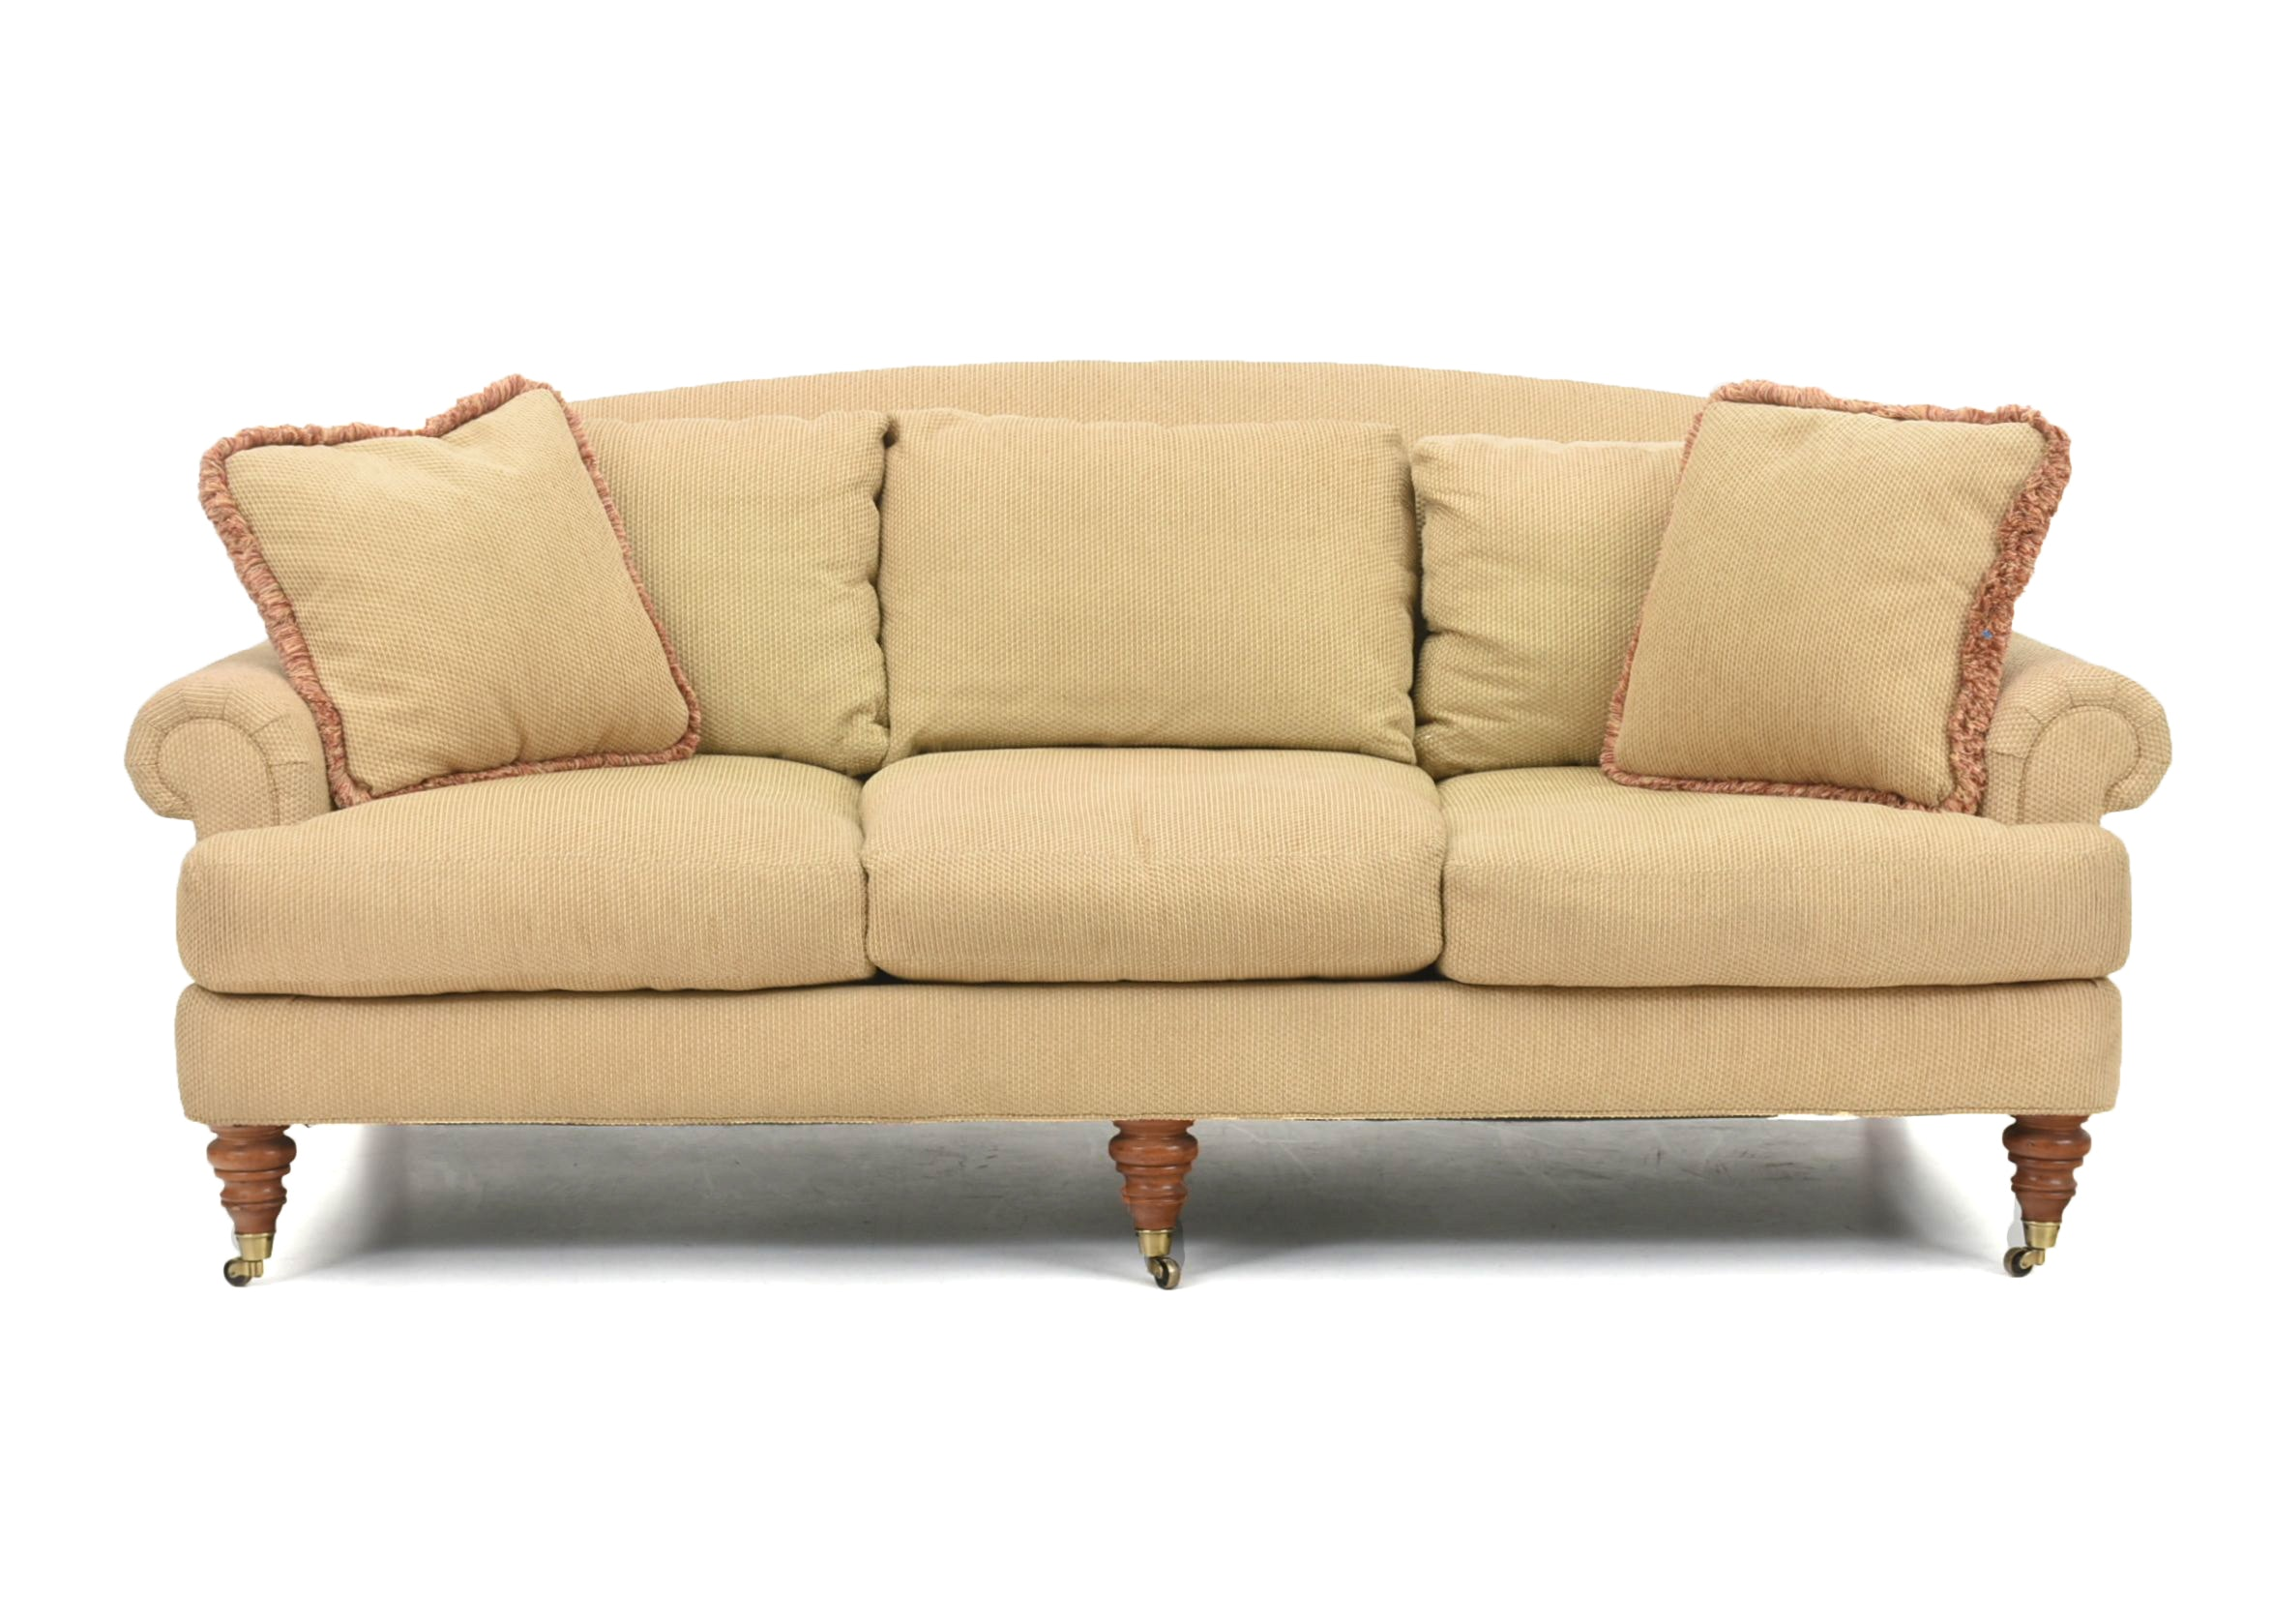 Lillian August Sofa ...